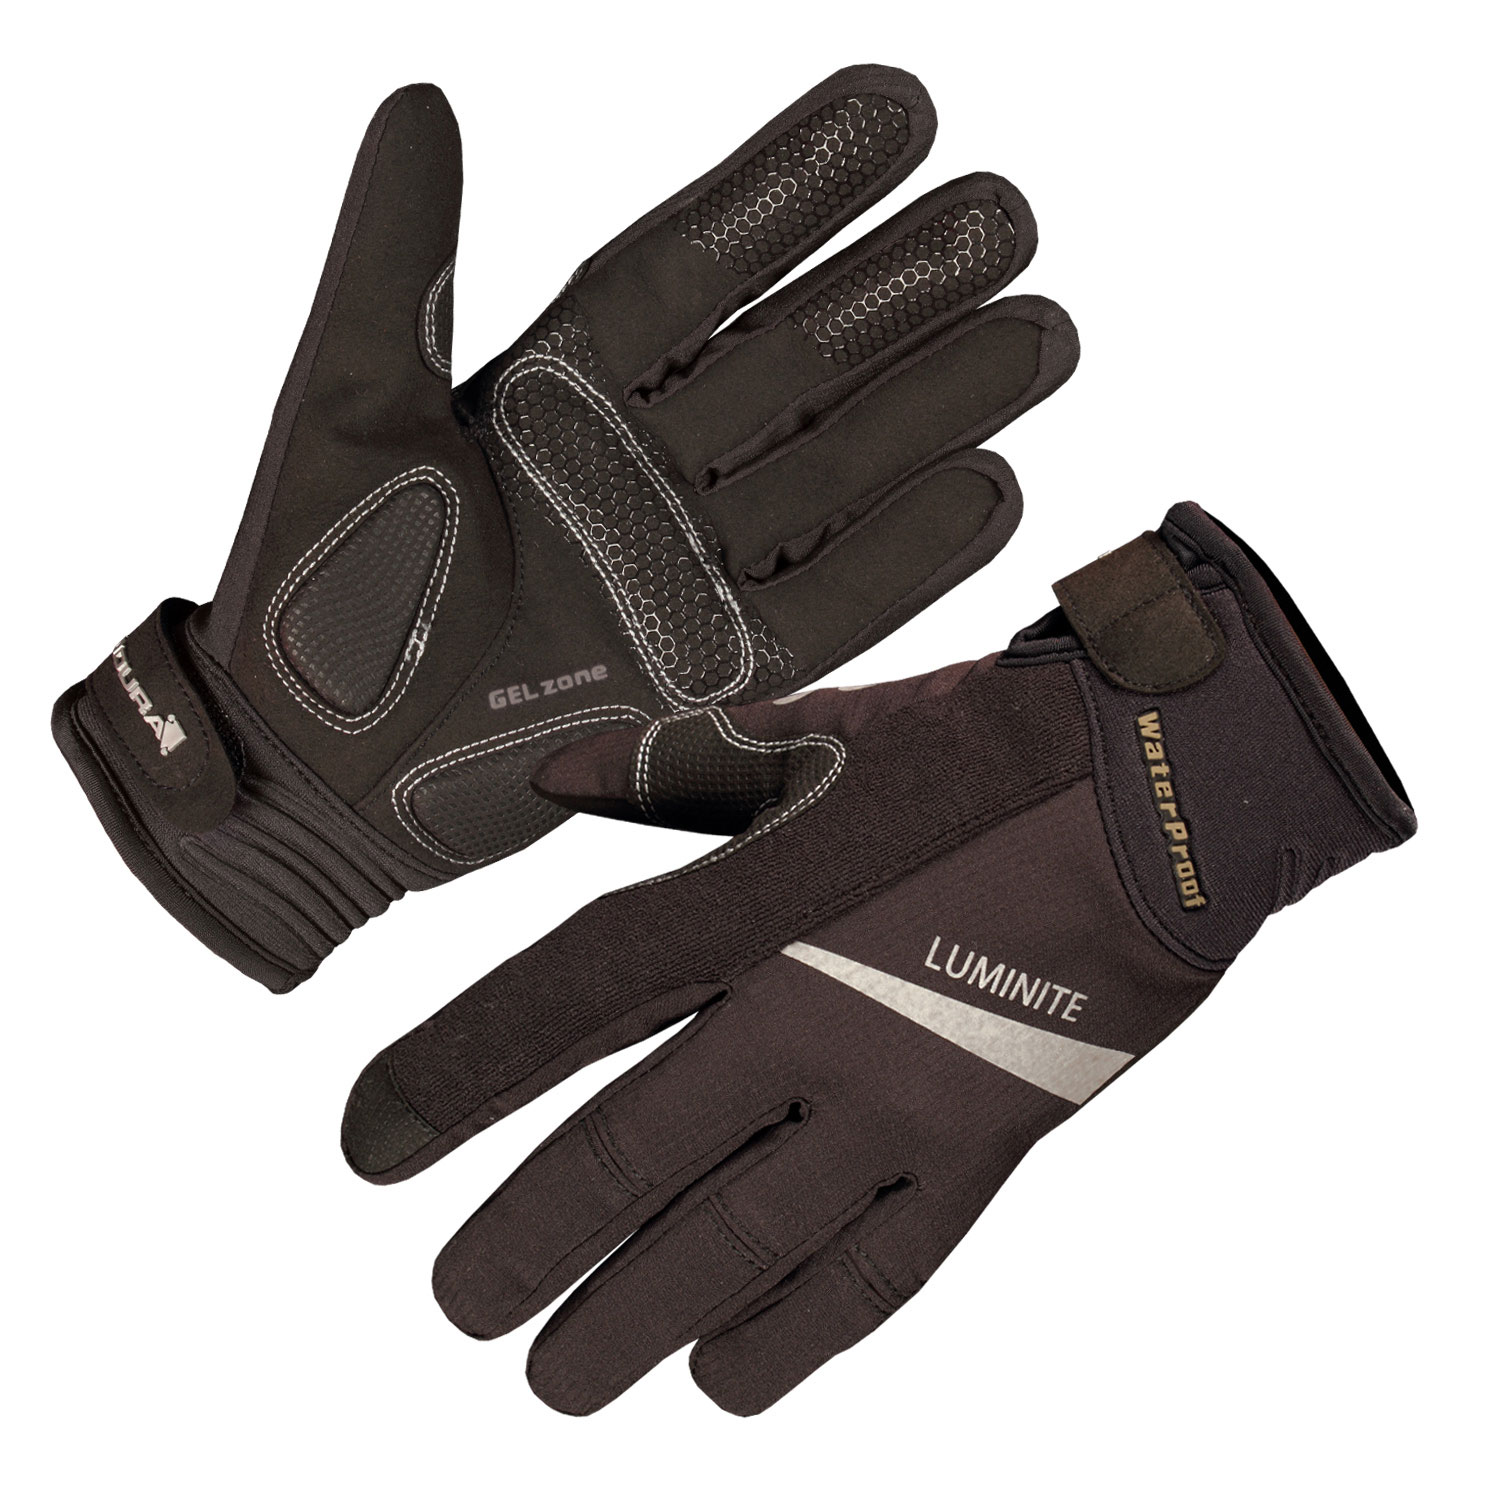 Luminite Glove Black